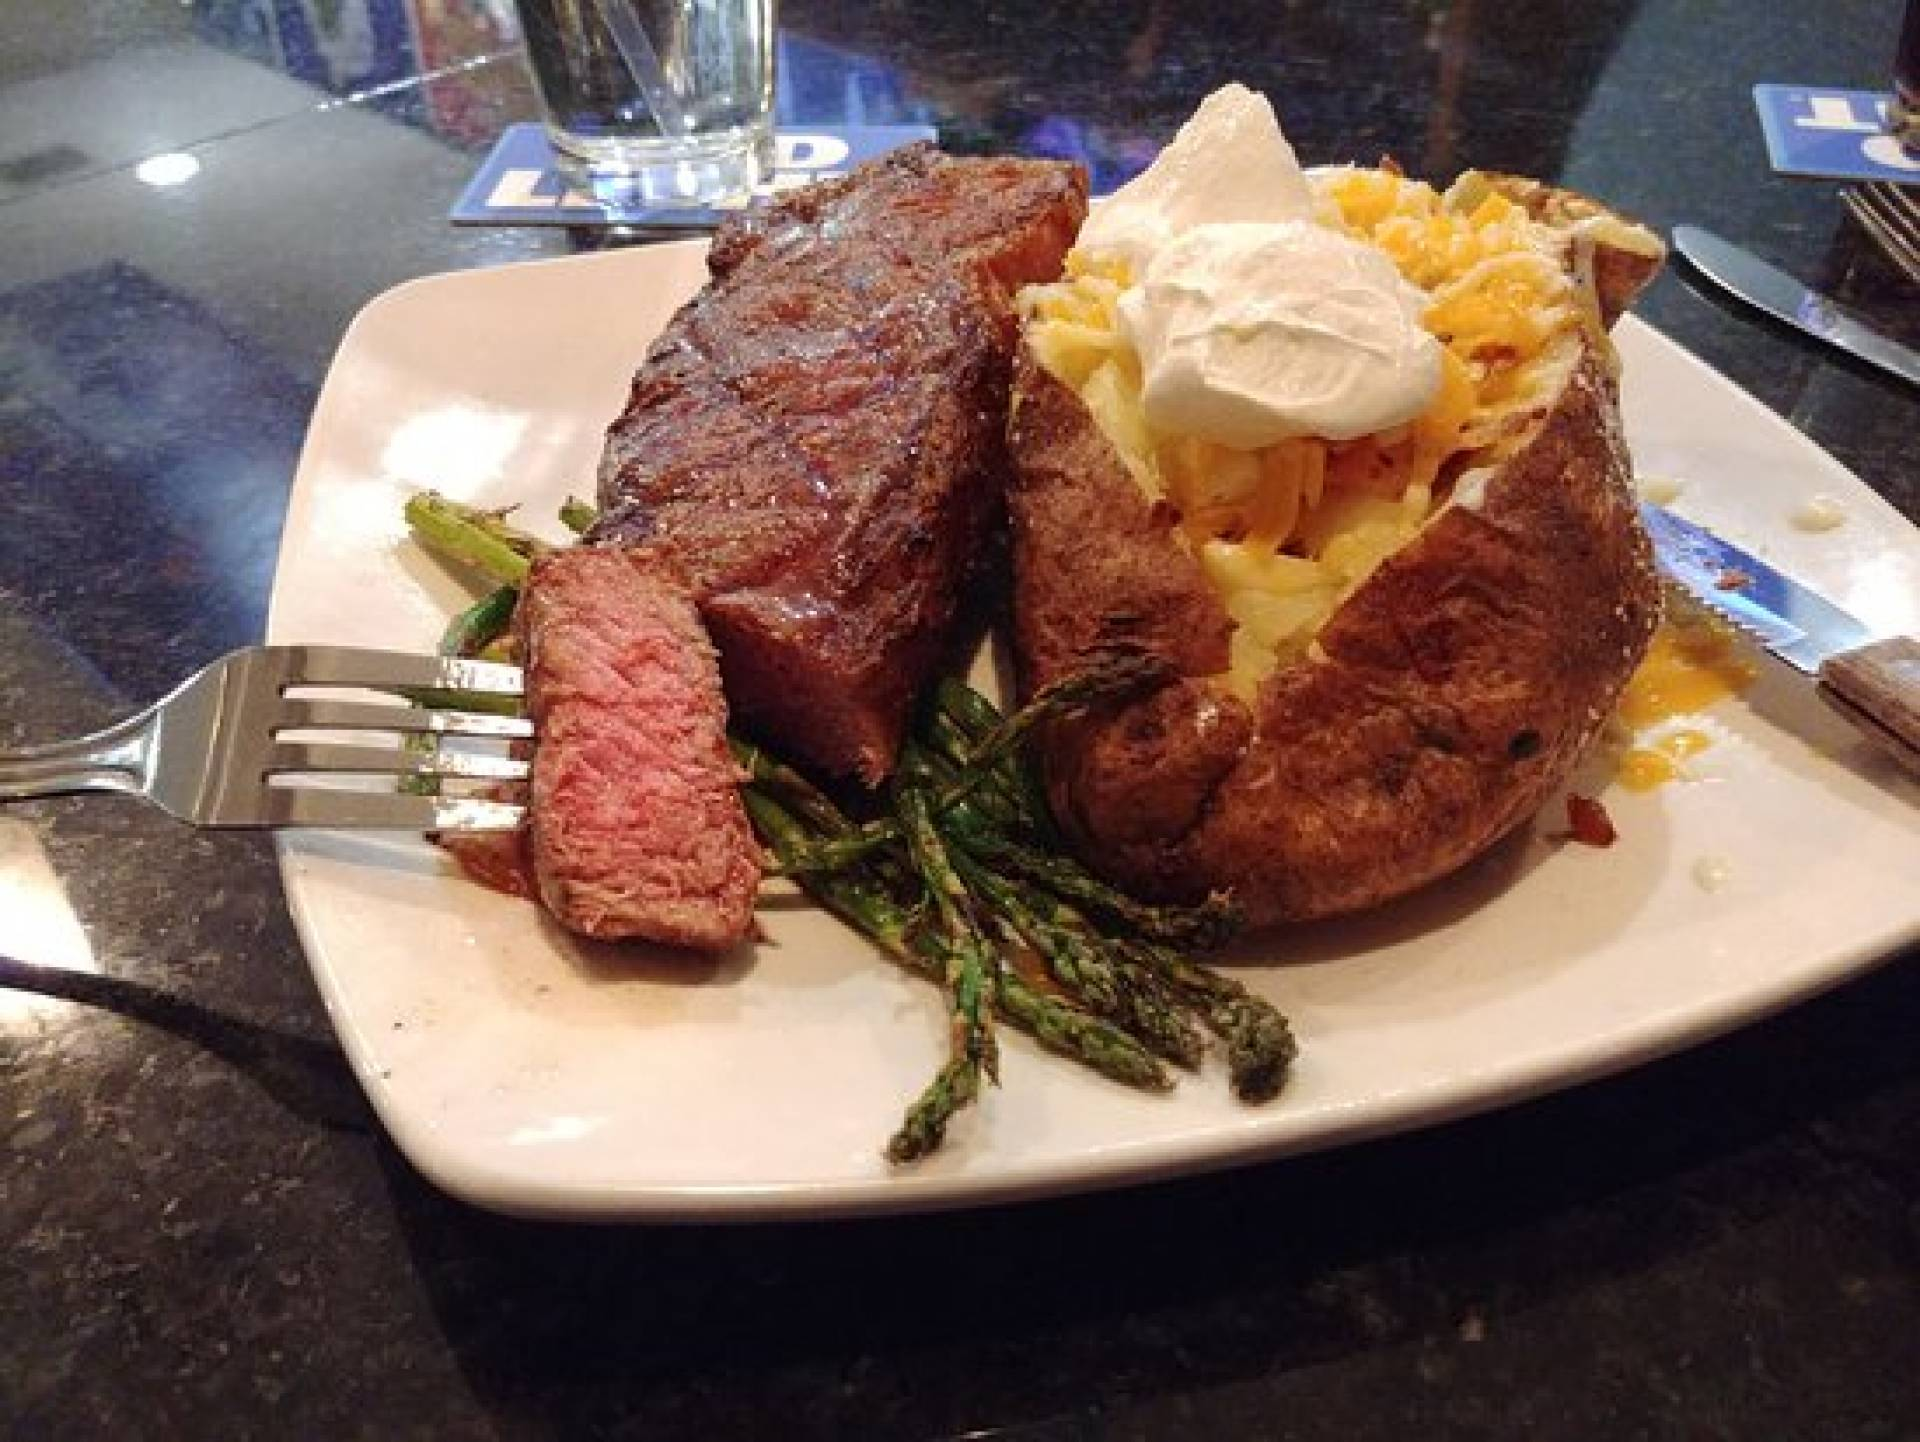 Whole30 Grilled Steak with Loaded Baked Potato